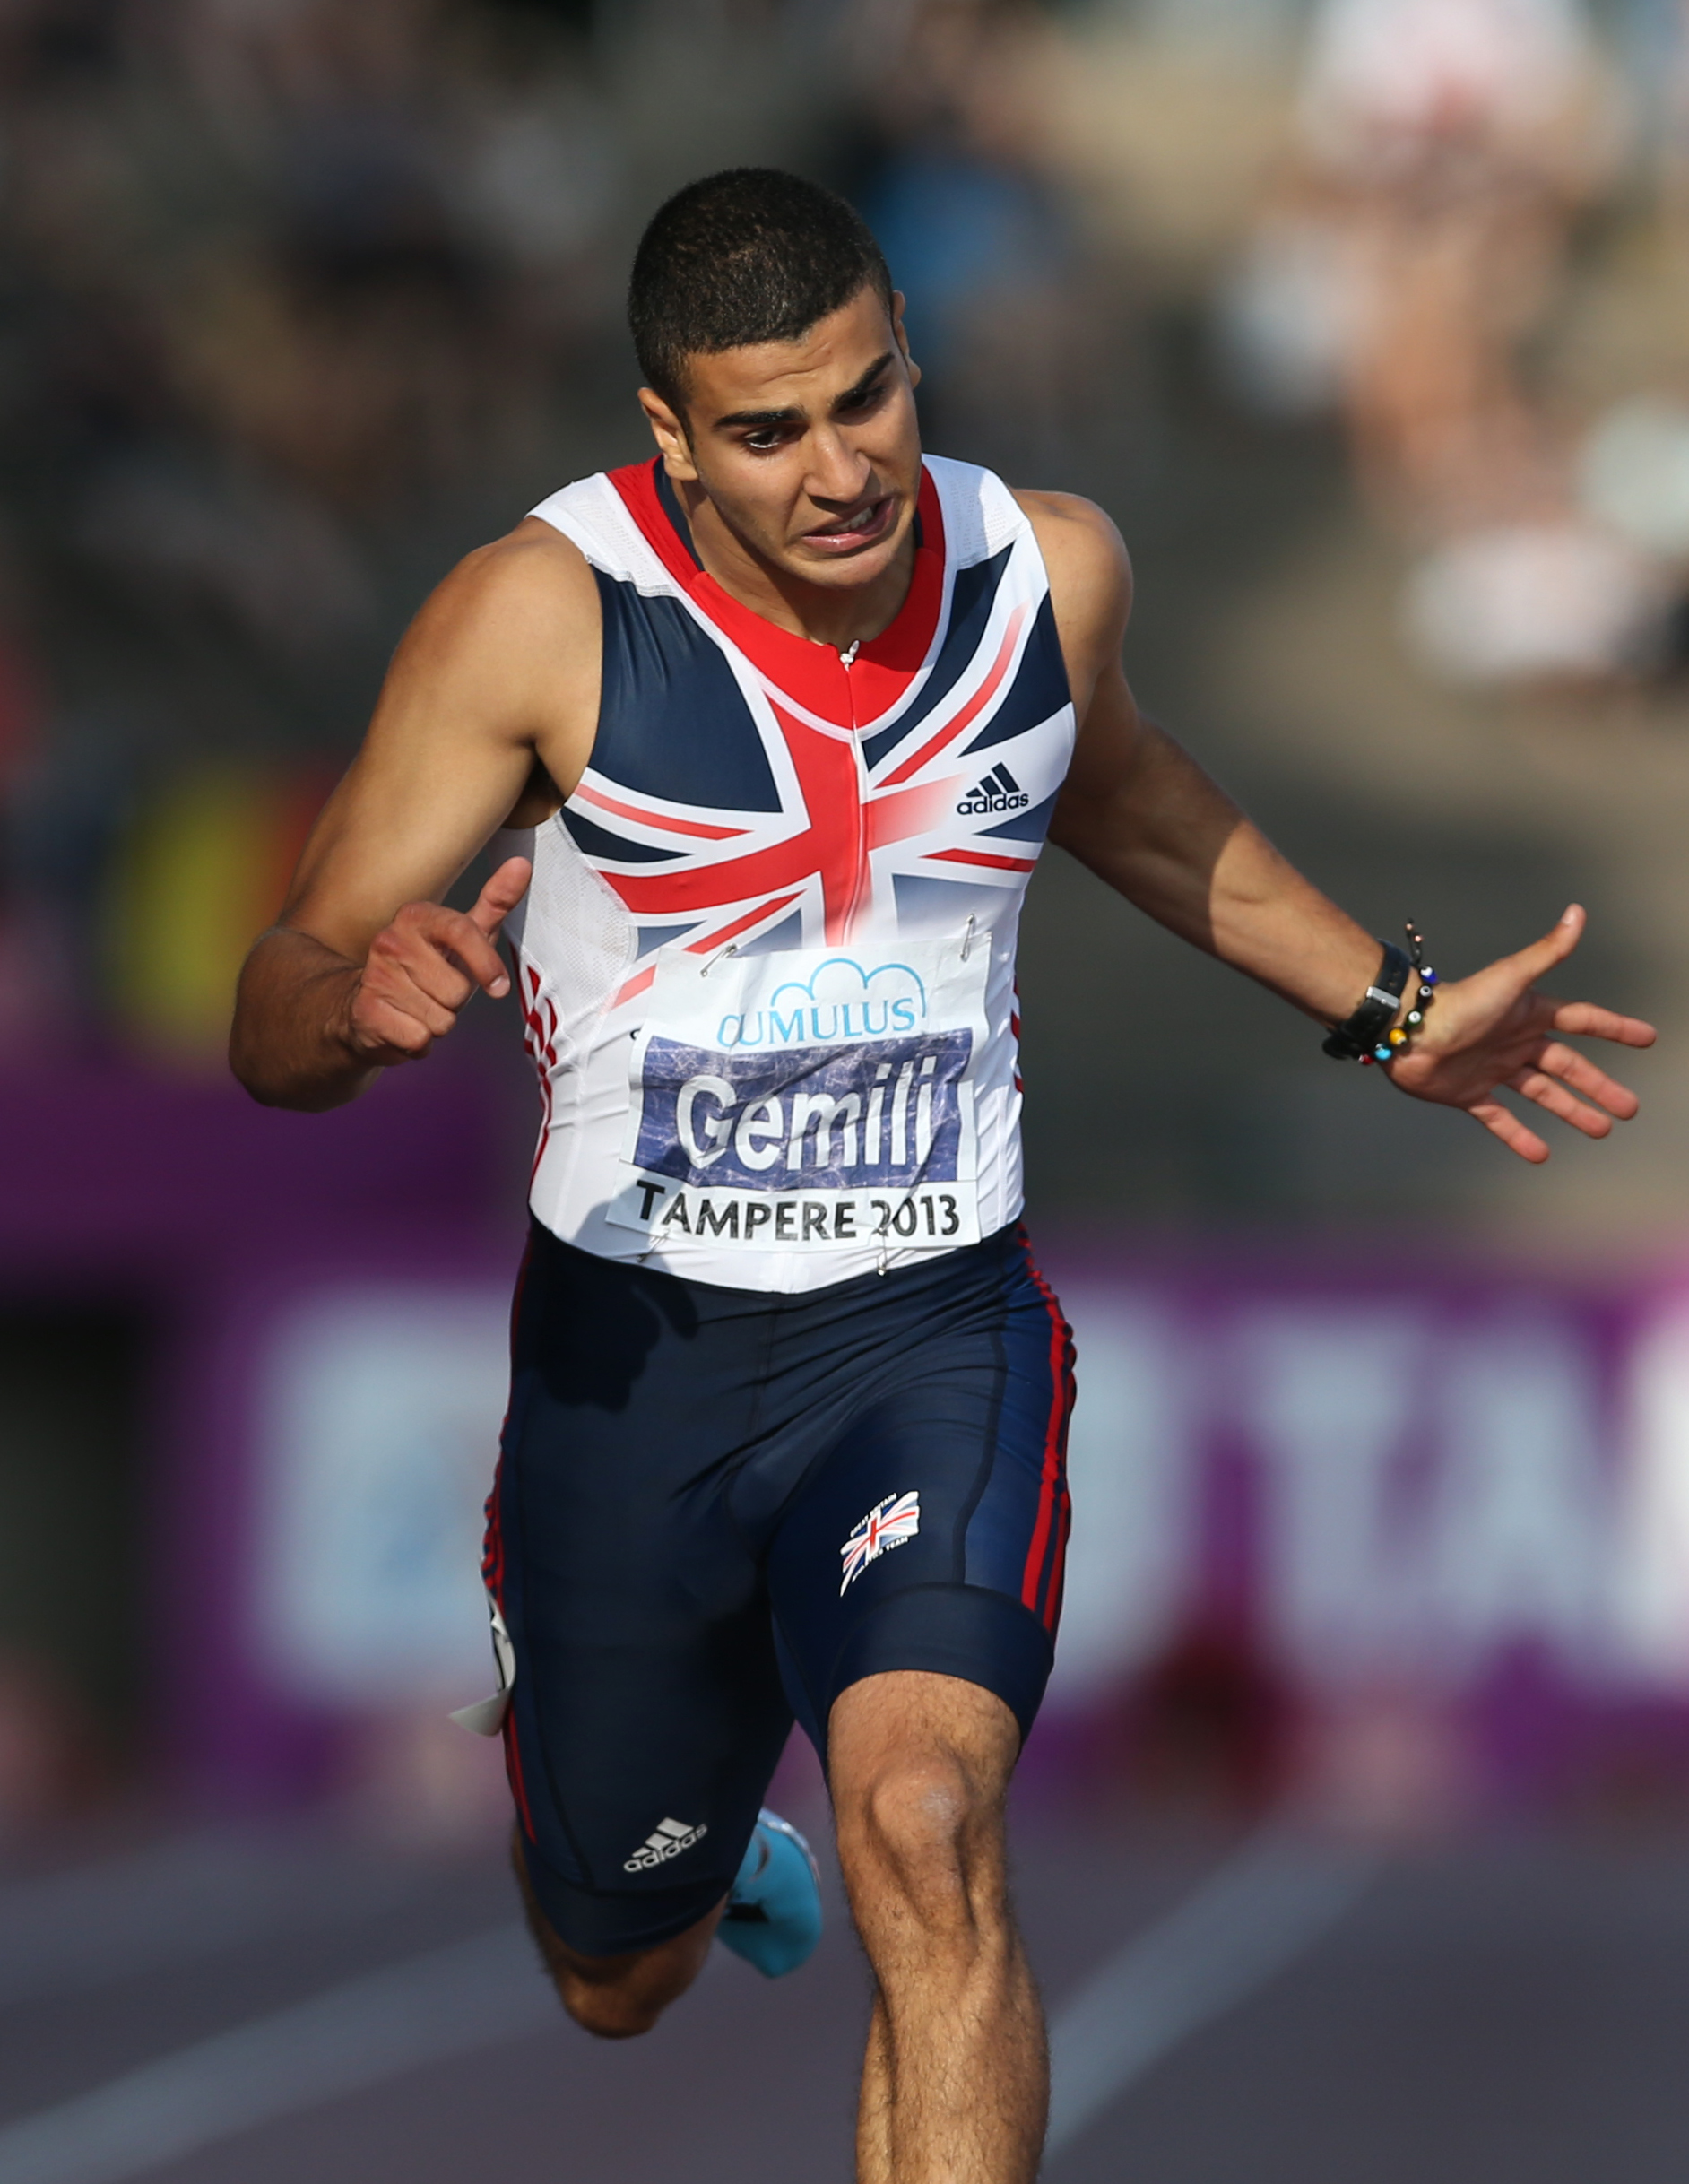 Adam Gemili willing to be versatile in order to stay ahead of the pack